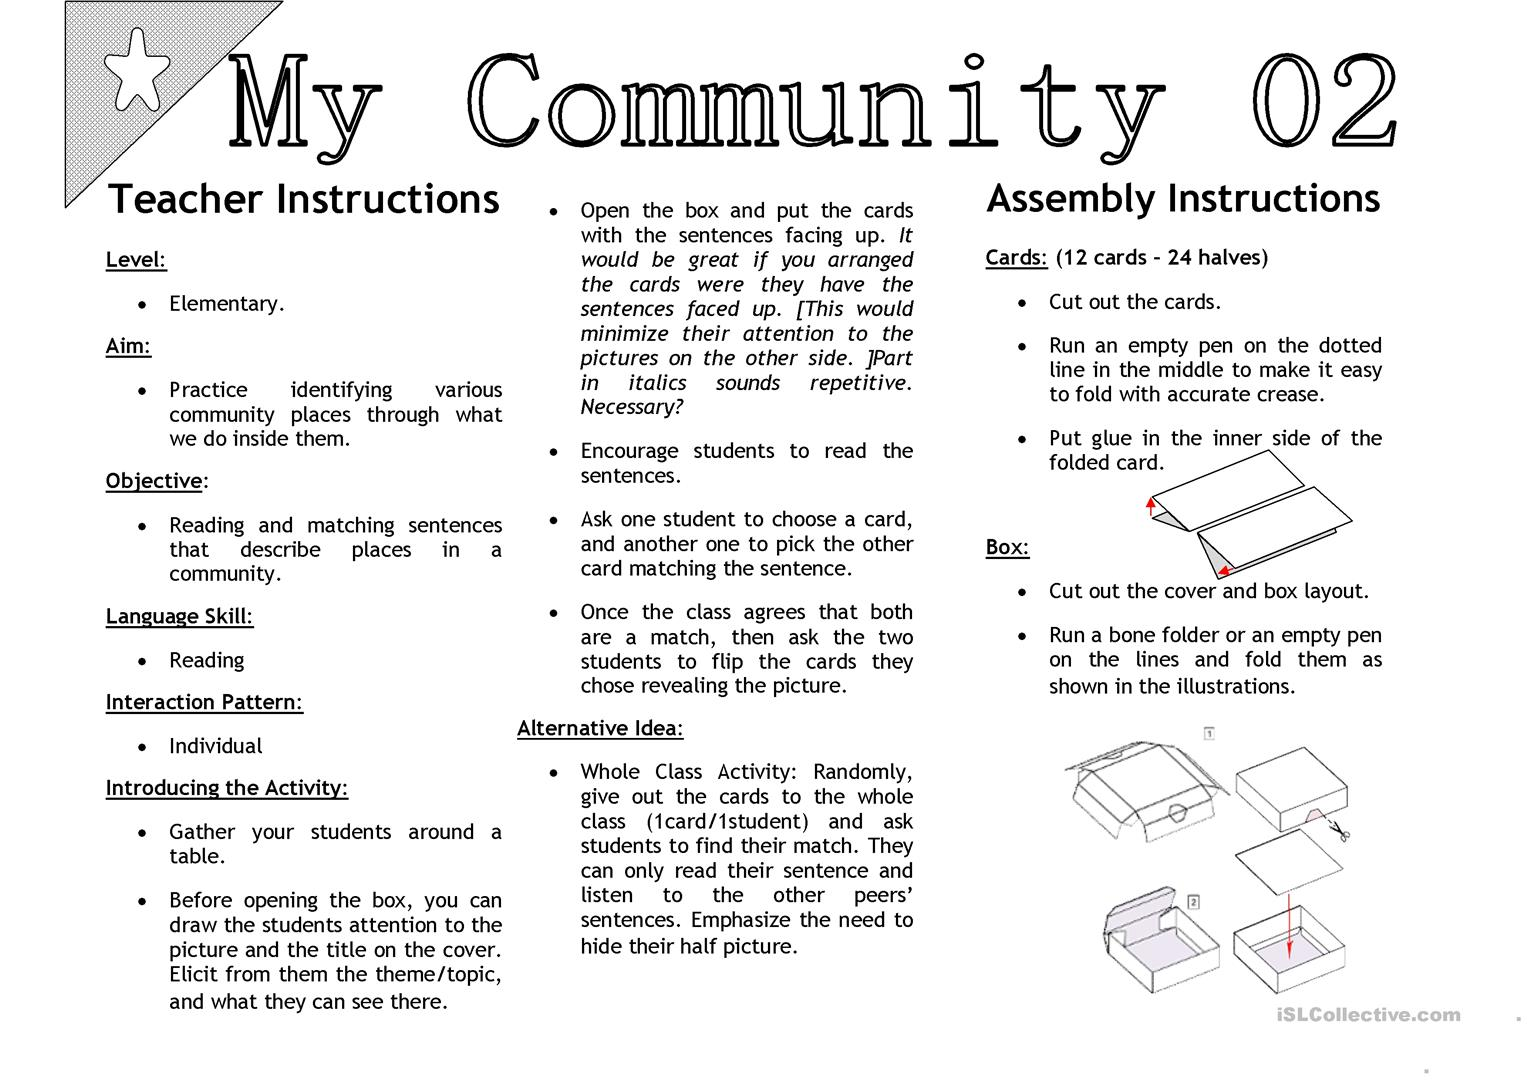 My Community 02 Sentenc Matching Activity Cards Worksheet